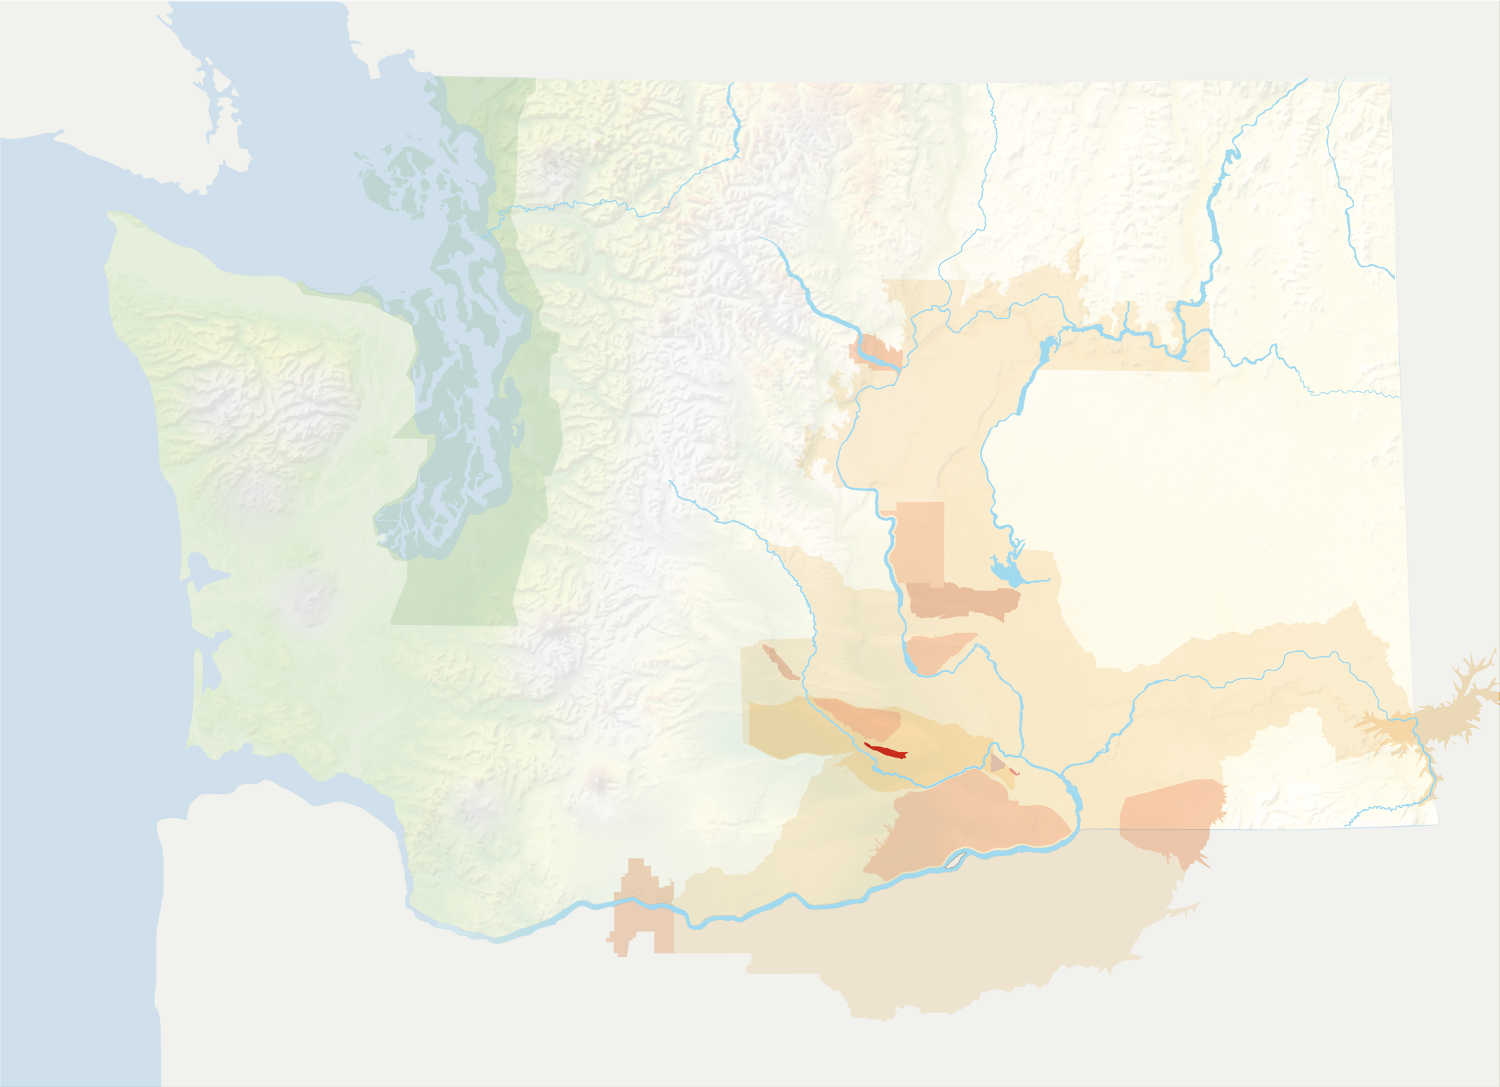 Map of Washington with the Snipes Mountain AVA in red, surrounded by the rest of the AVAs in muted greens and oranges.